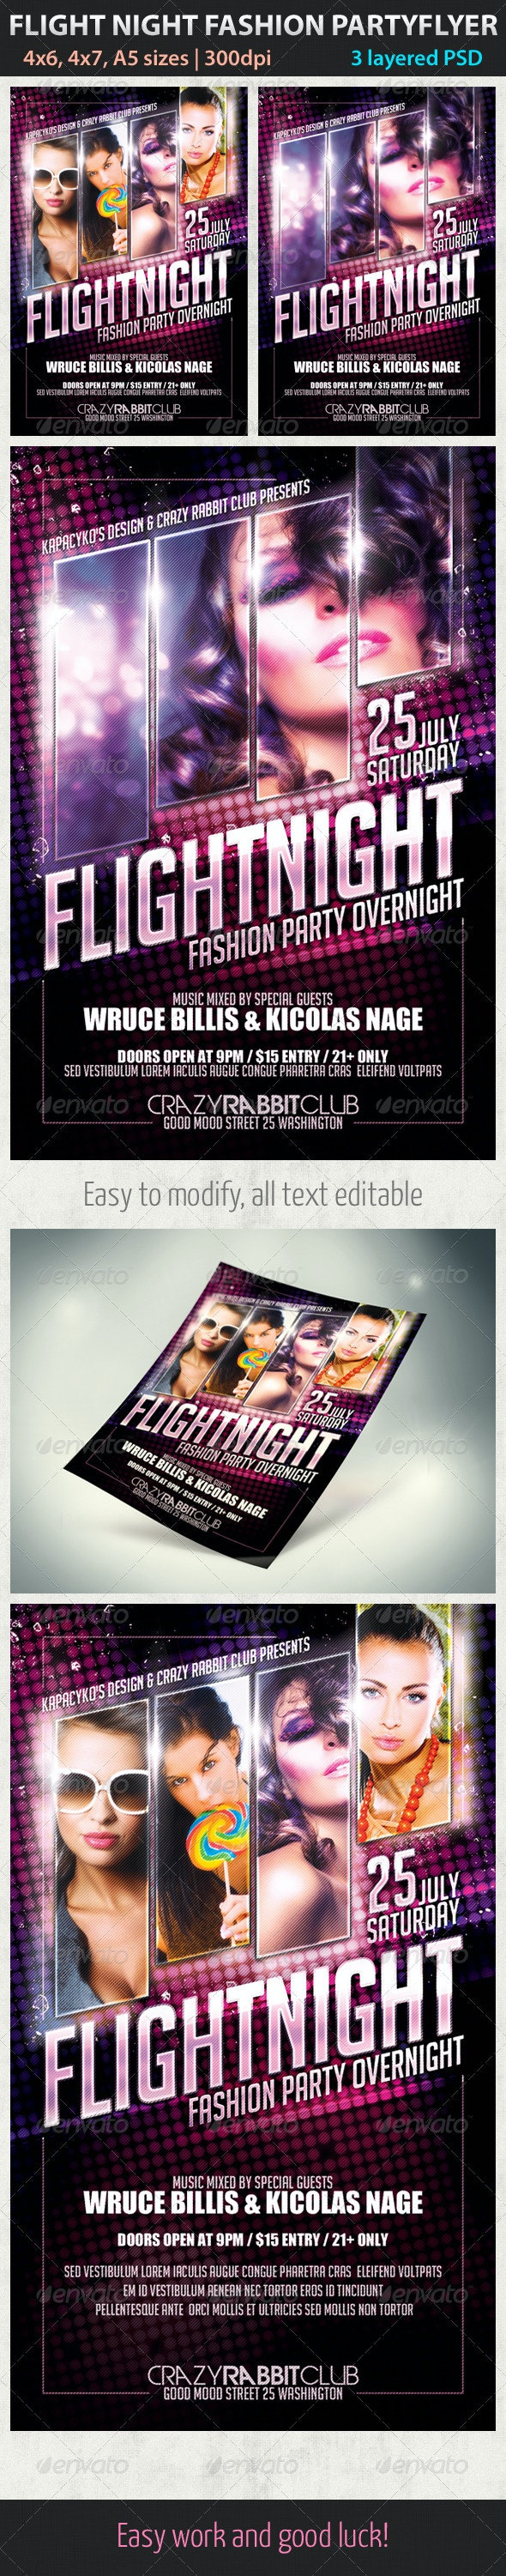 Flight Night Fashion Party Flyer - Clubs & Parties Events